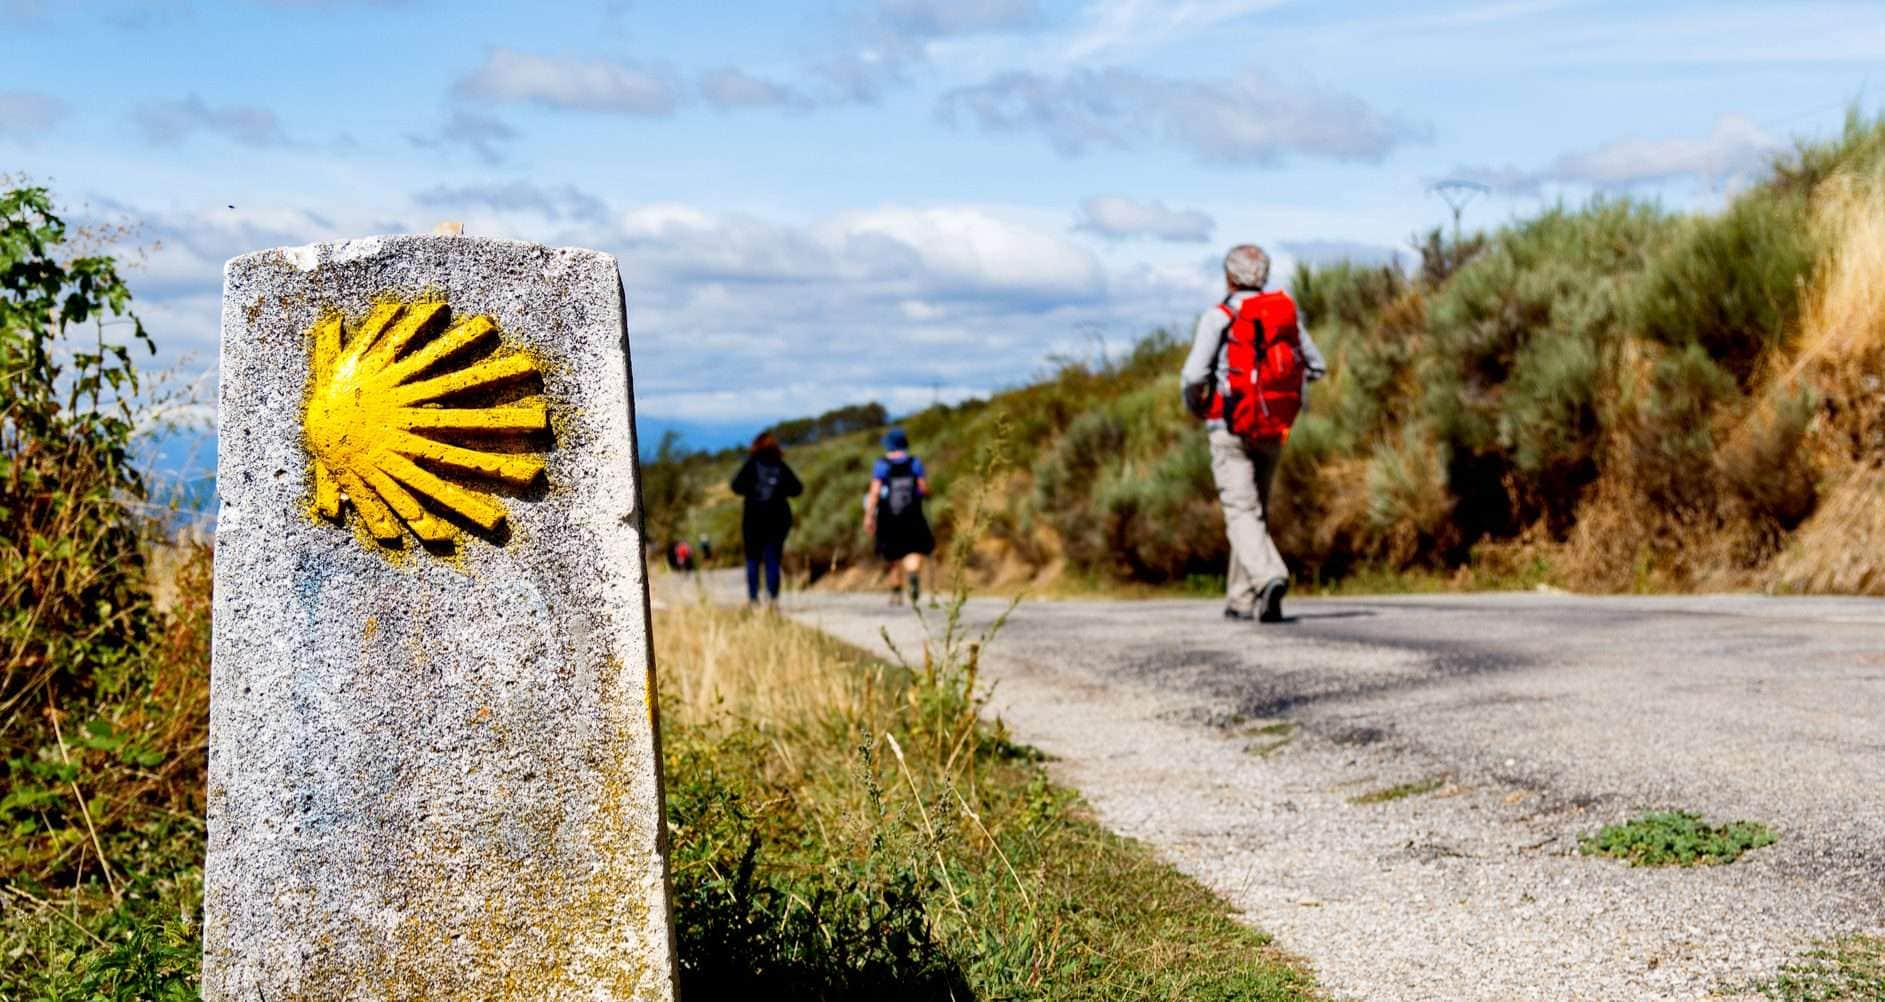 camino walks and pilgrimage tours, camino de santiago, camino tours, pilgrimage walks